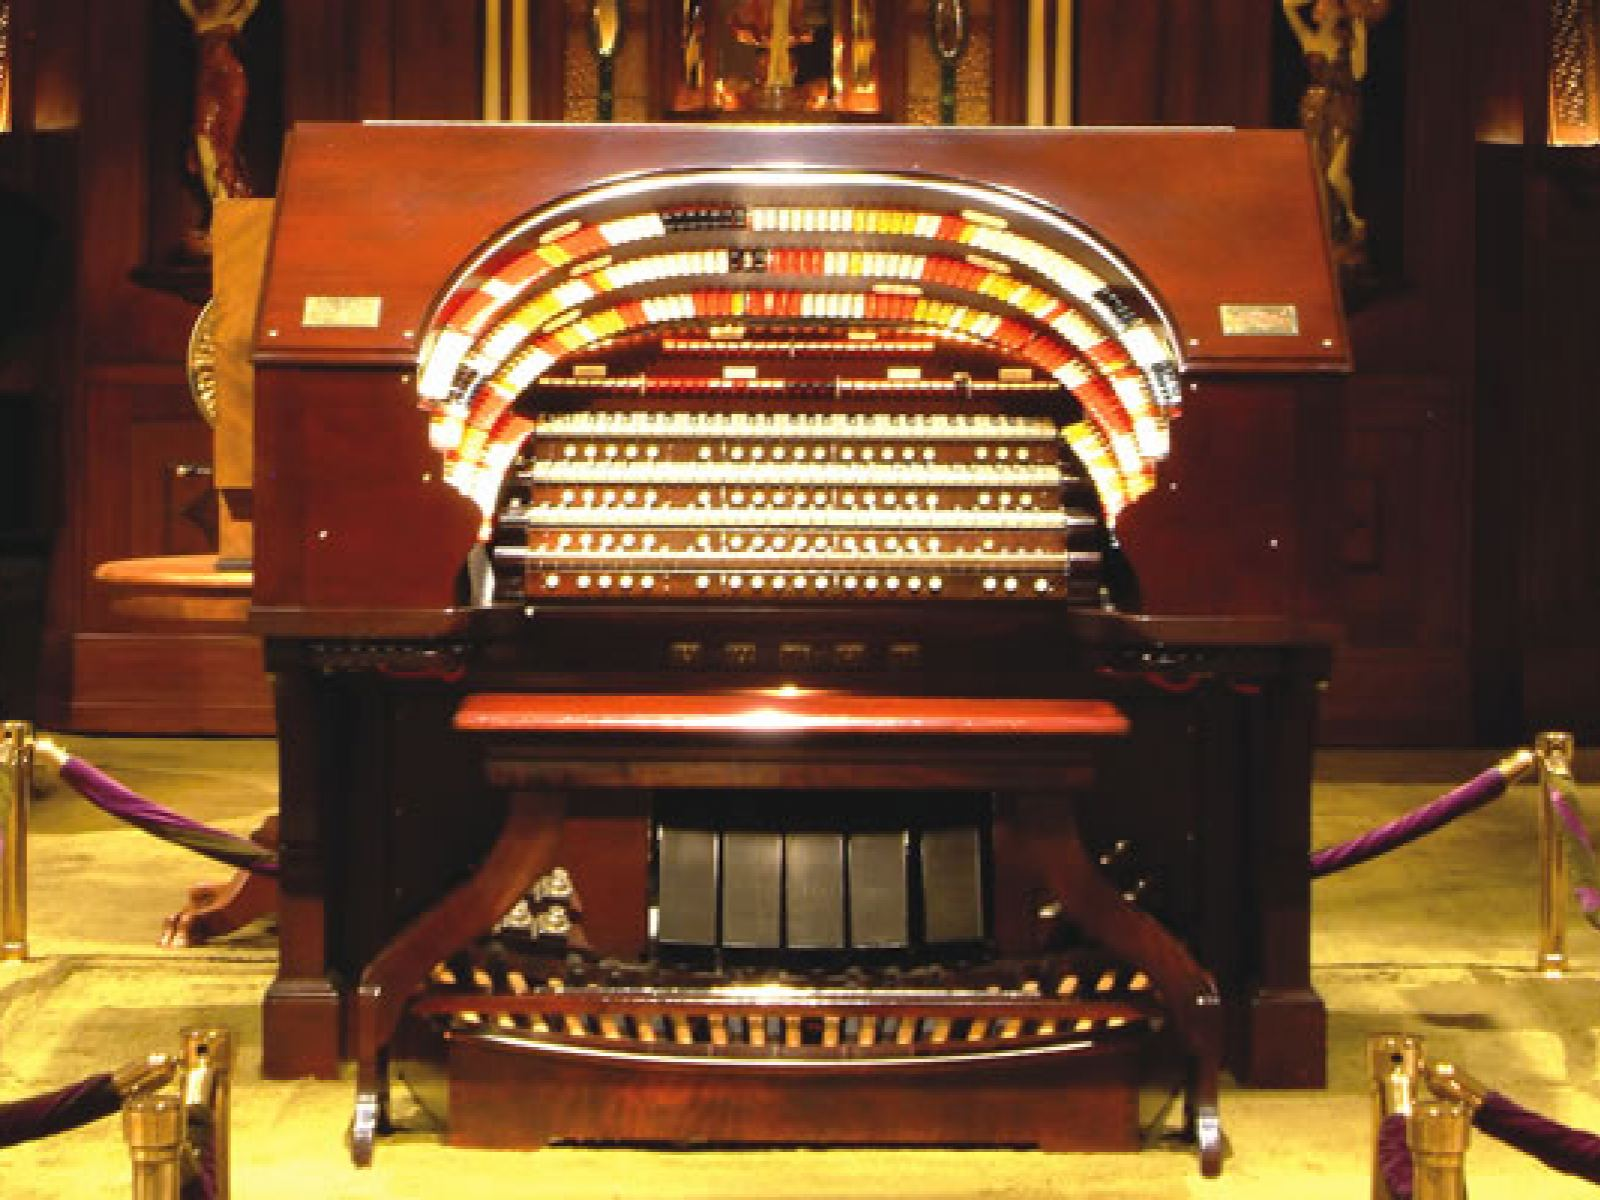 Christmas Concerts 2019 Los Angeles.The Nethercutt Collection Presents Christmas Organ Concert